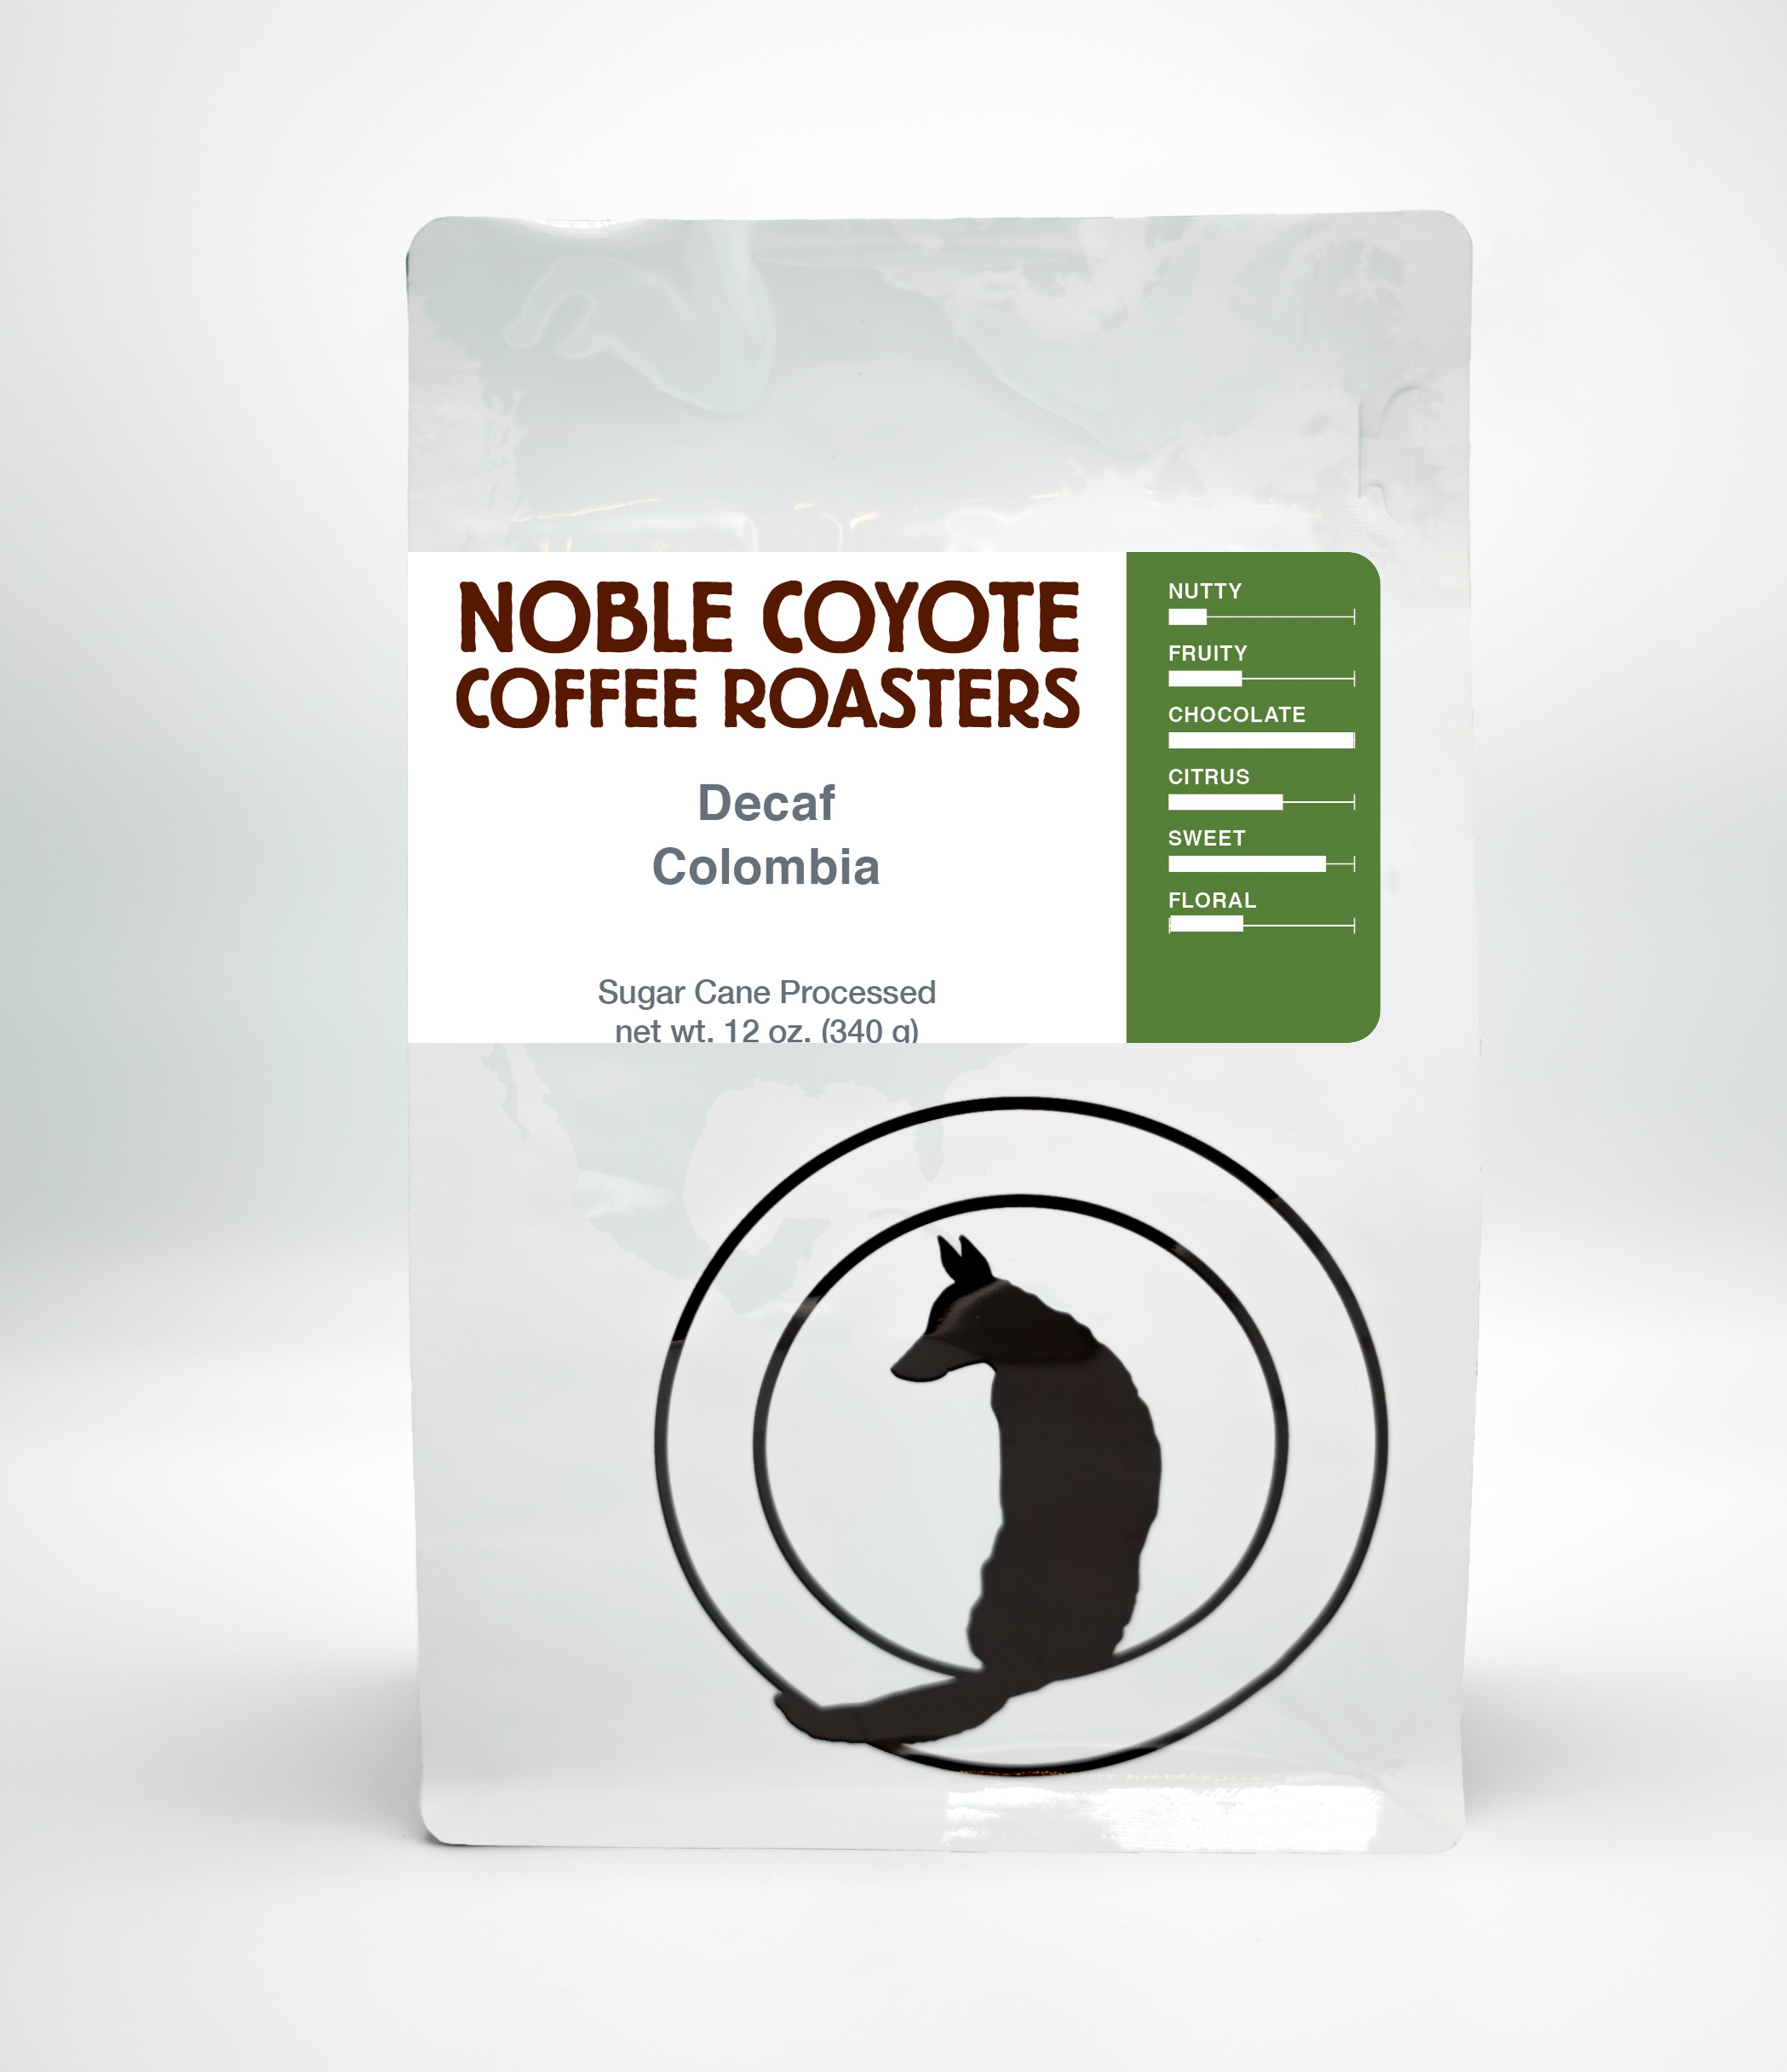 Decaf Colombia from Noble Coyote Coffee Roasters